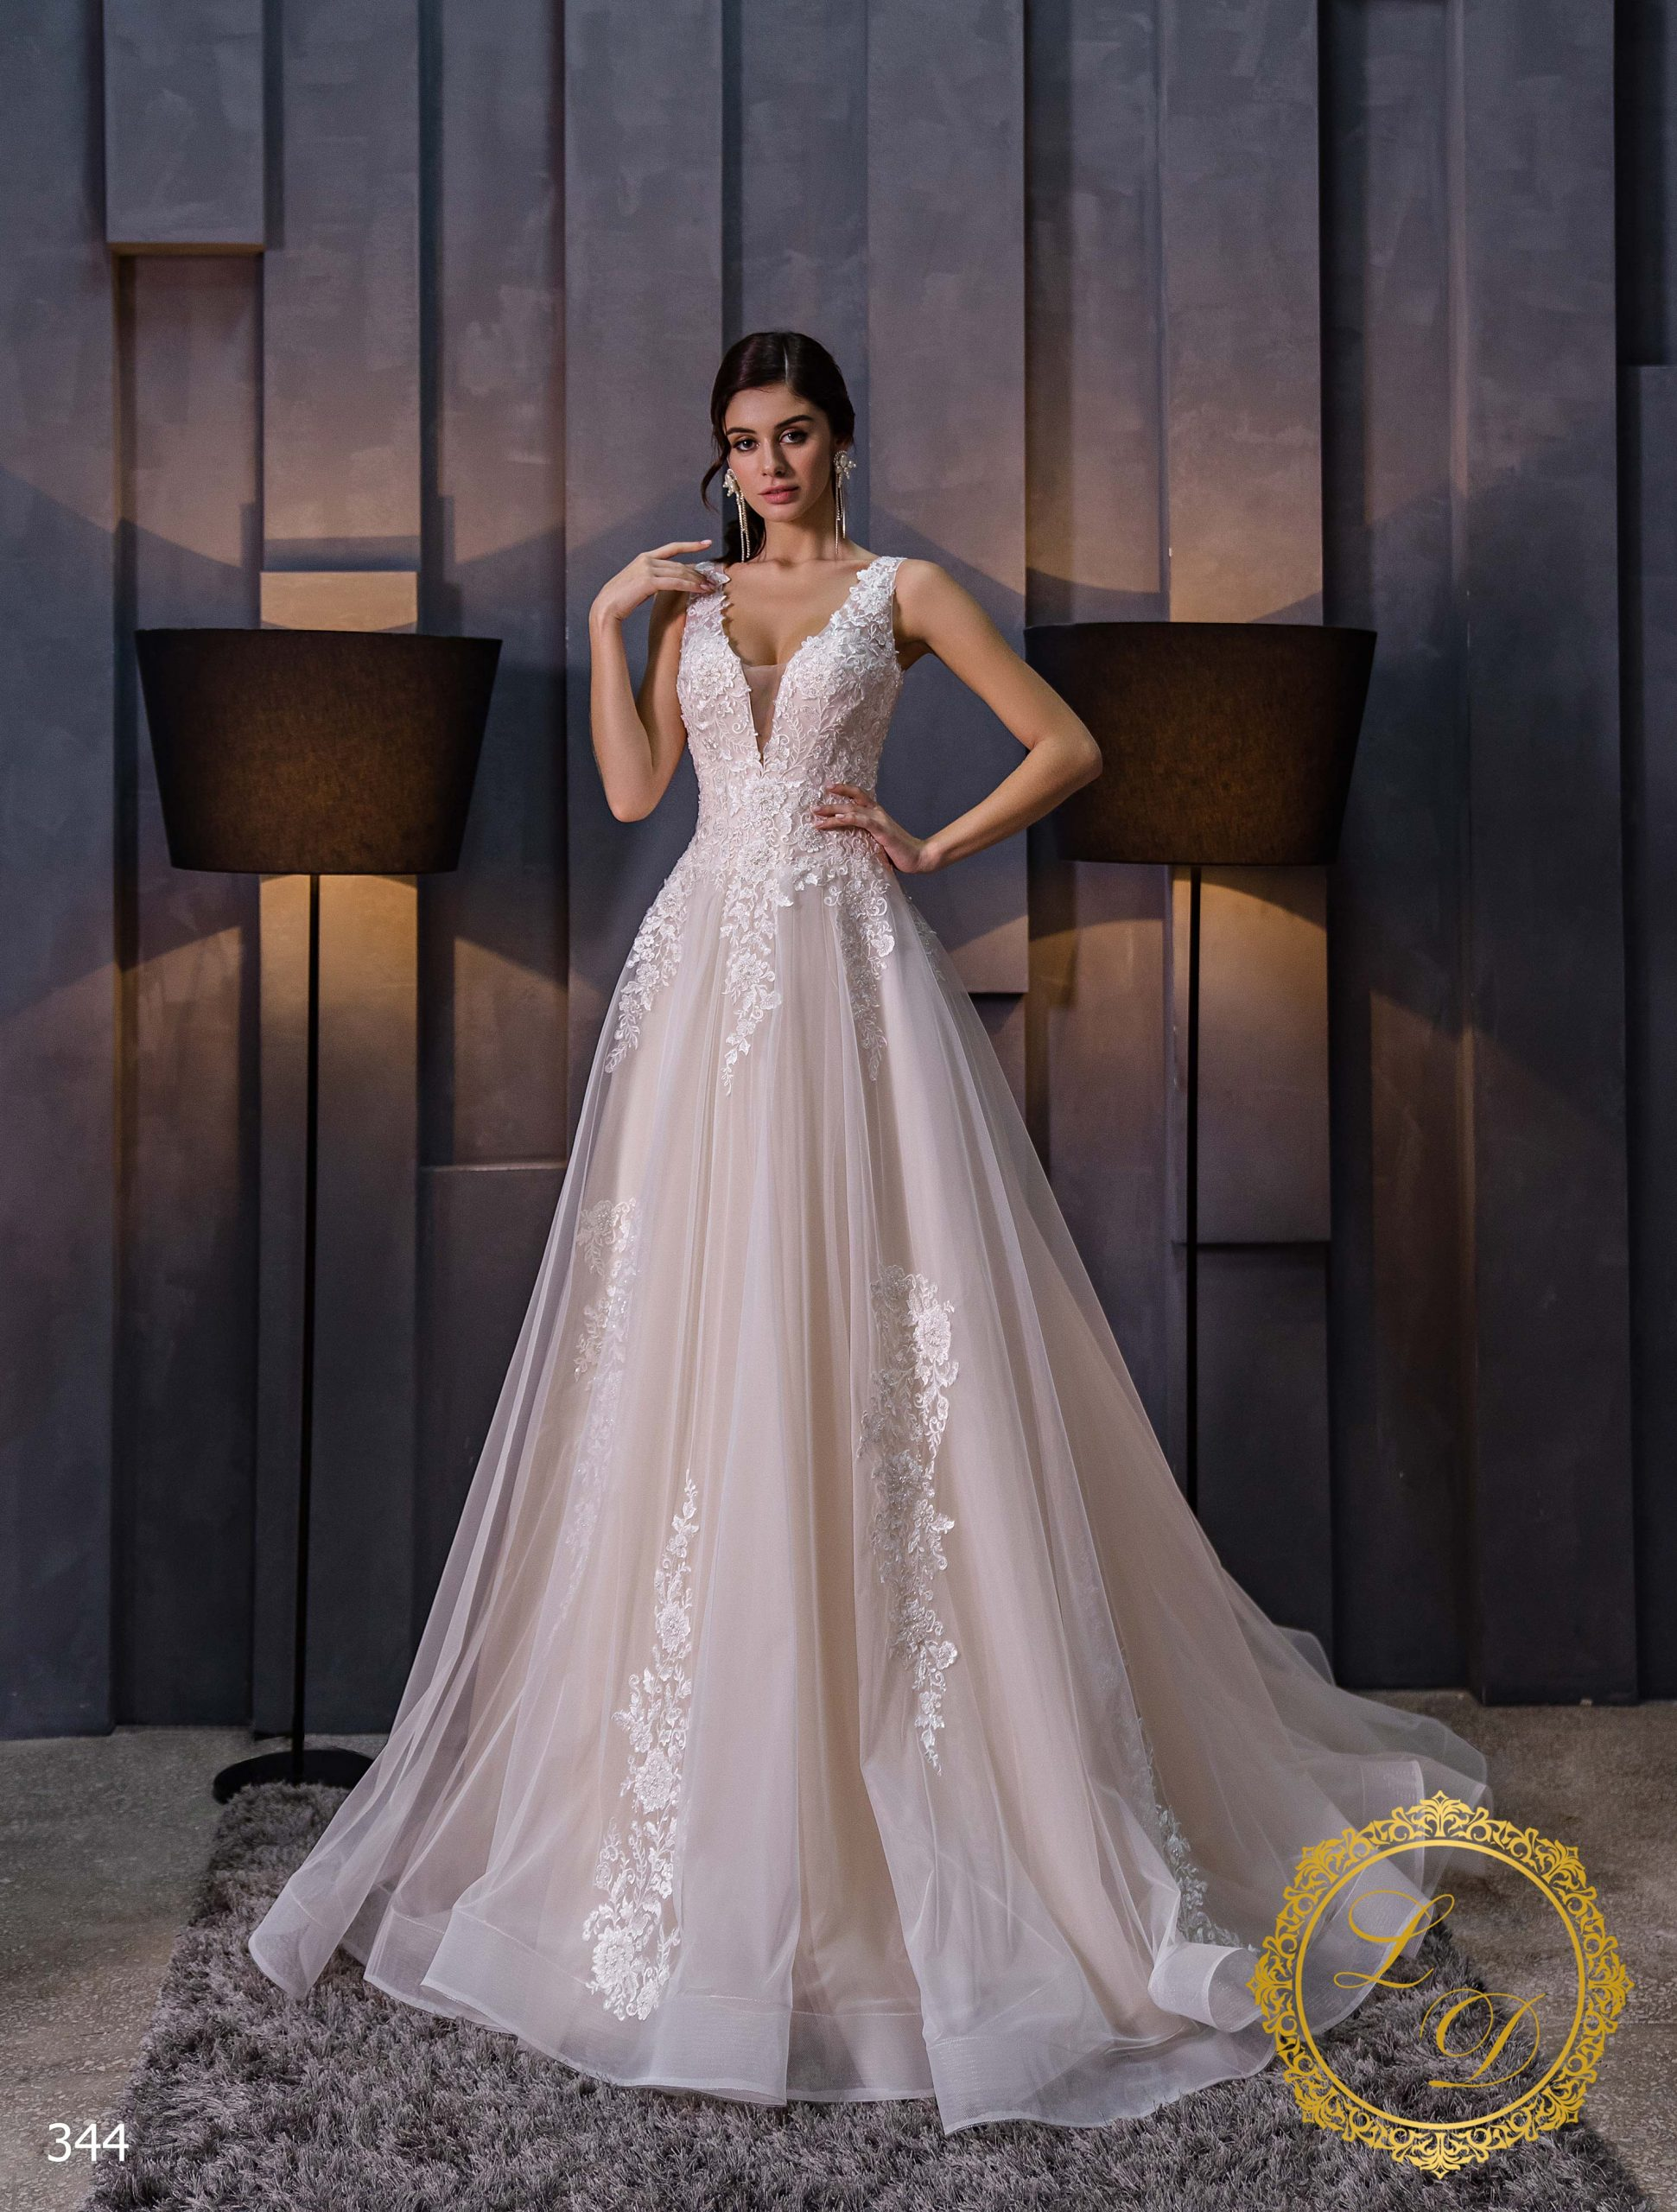 Wedding dress Lady Di 344-1